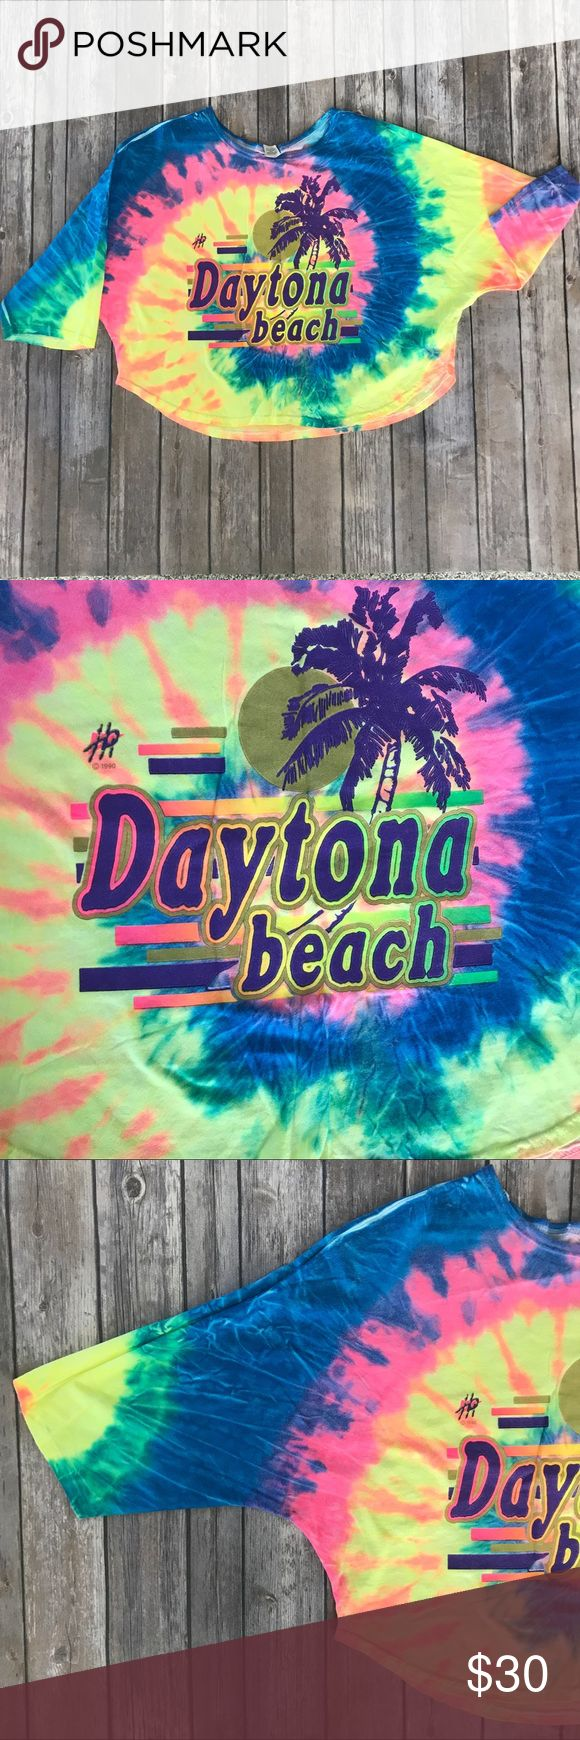 VTG 90s tie Dye crop top festival shirt Daytona Vtg 90s TIE DYE Neon Shirt Crop Top Tee Festival Destin Hippy Womens Made In USA   Excellent condition!  • one size fits most  • Made in USA  • True vintage. Made in 1990 (see photos. On shirt)  • 100% cotton  • No holes, rips or stains  • 3/4 sleeve on the beach Tops Crop Tops